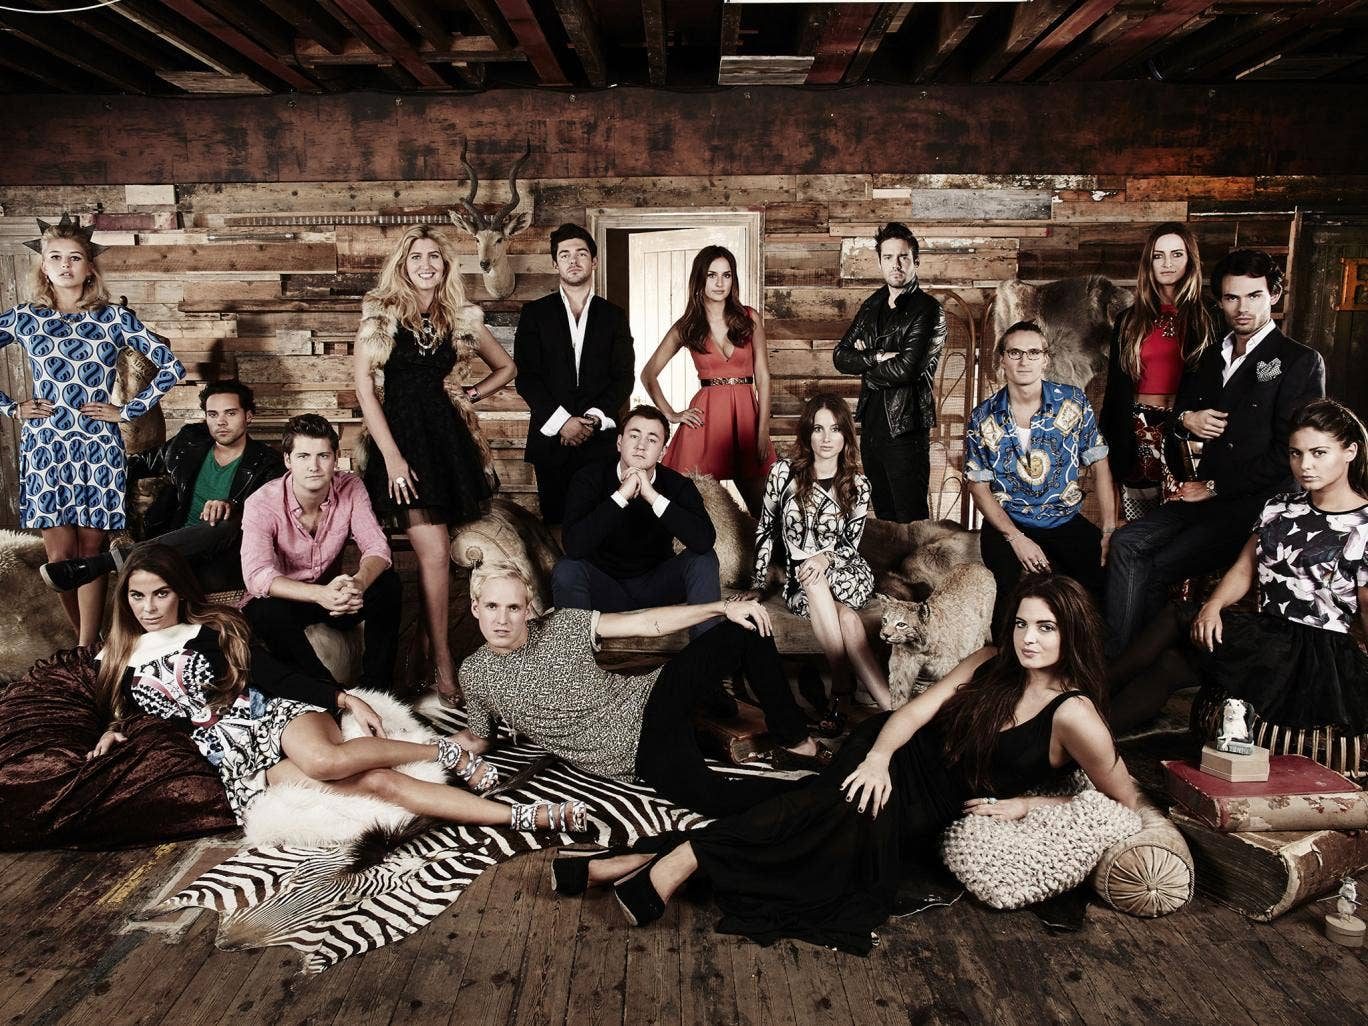 Look who's back, back again: Made in Chelsea season 7 starts on E4 on Monday 7 April